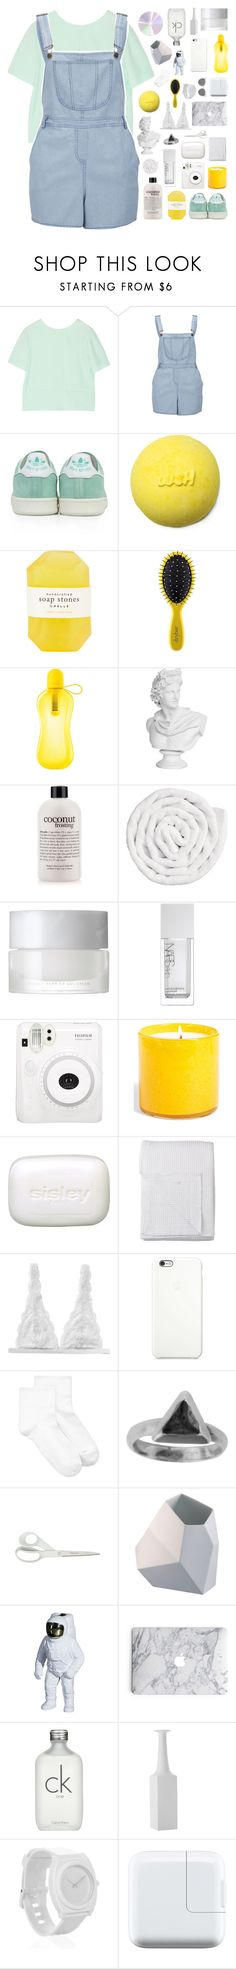 """""""a t l e e × m u s i c c h a l l e n g e"""" by when-you-listen ❤ liked on Polyvore featuring T By Alexander Wang, Influence, adidas, Pelle, Drybar, philosophy, VIPP, SUQQU, NARS Cosmetics and Fuji"""